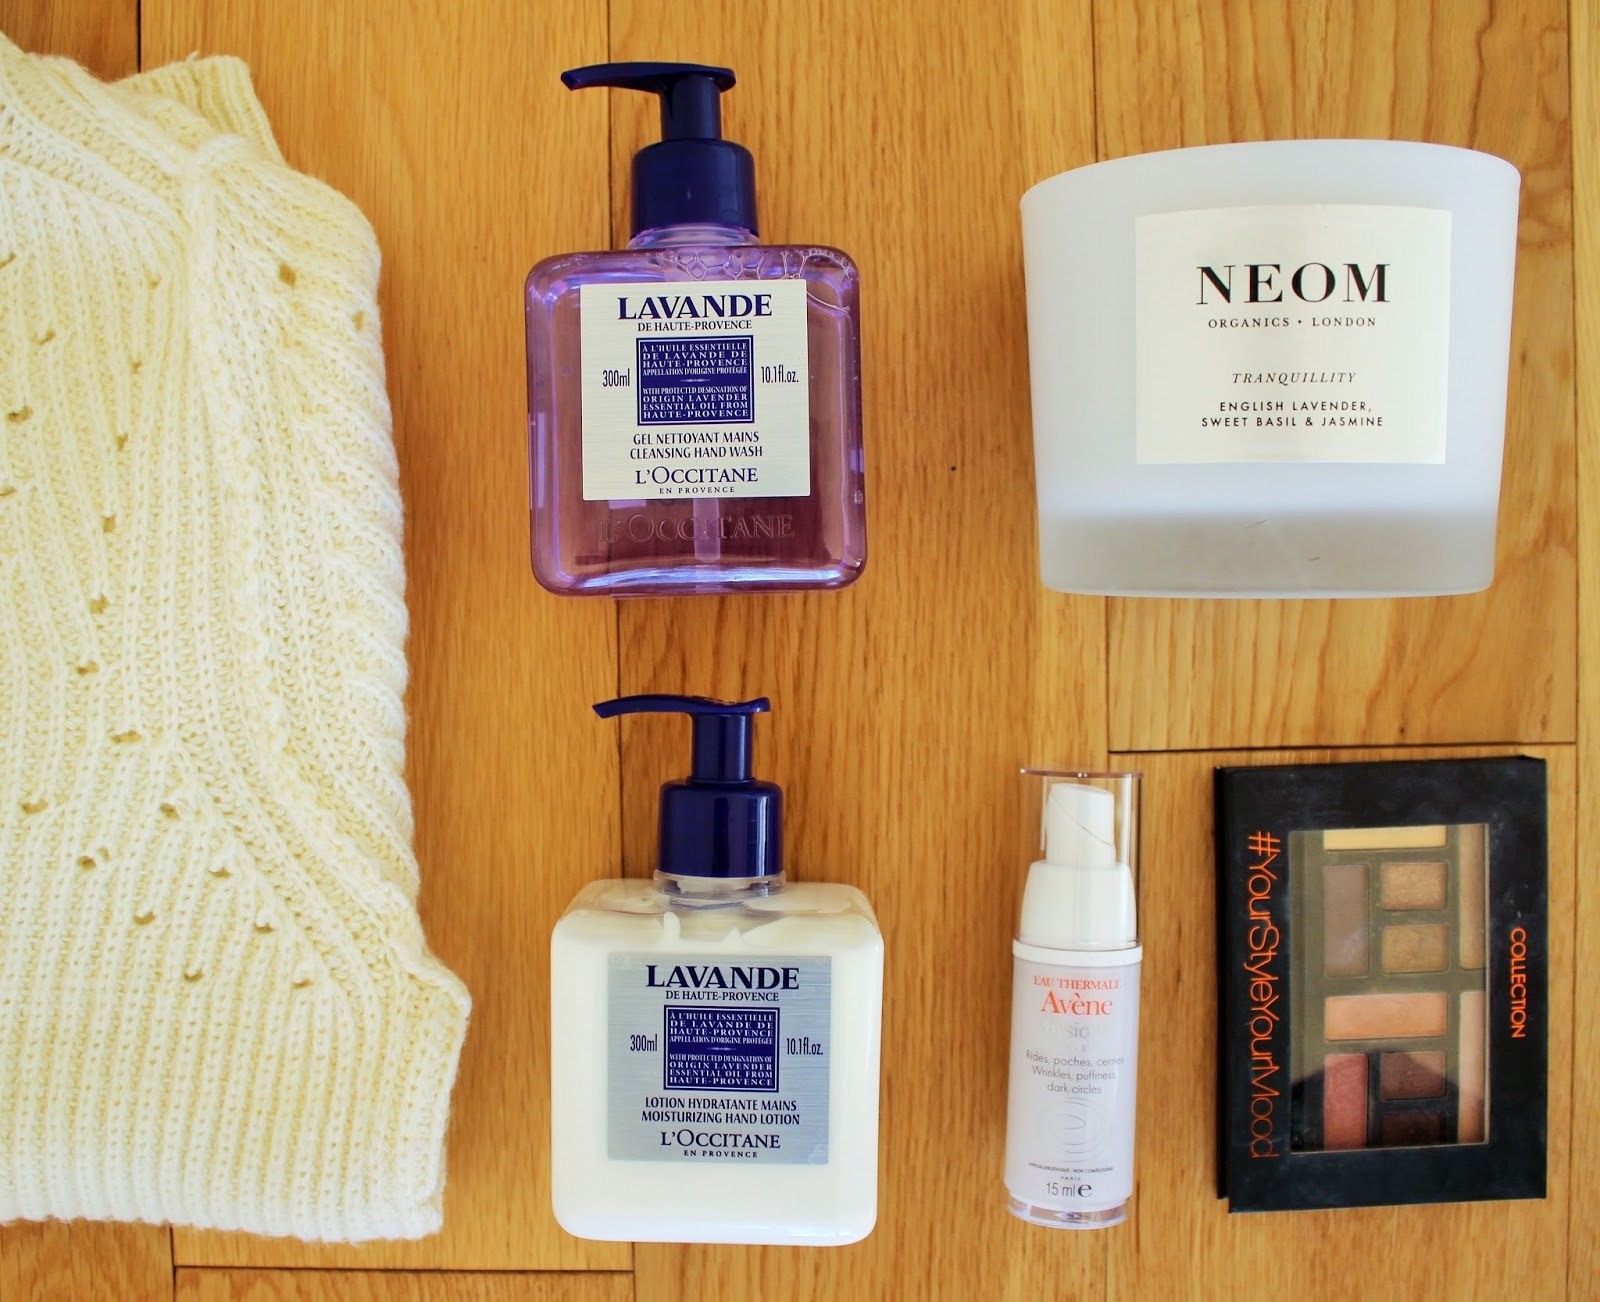 February Favourites - Topshop Jumper, Neom Candle, L'Occitane Hand Wash and Hand Cream, Collection Eyeshadow Palette, Avene Eye Cream